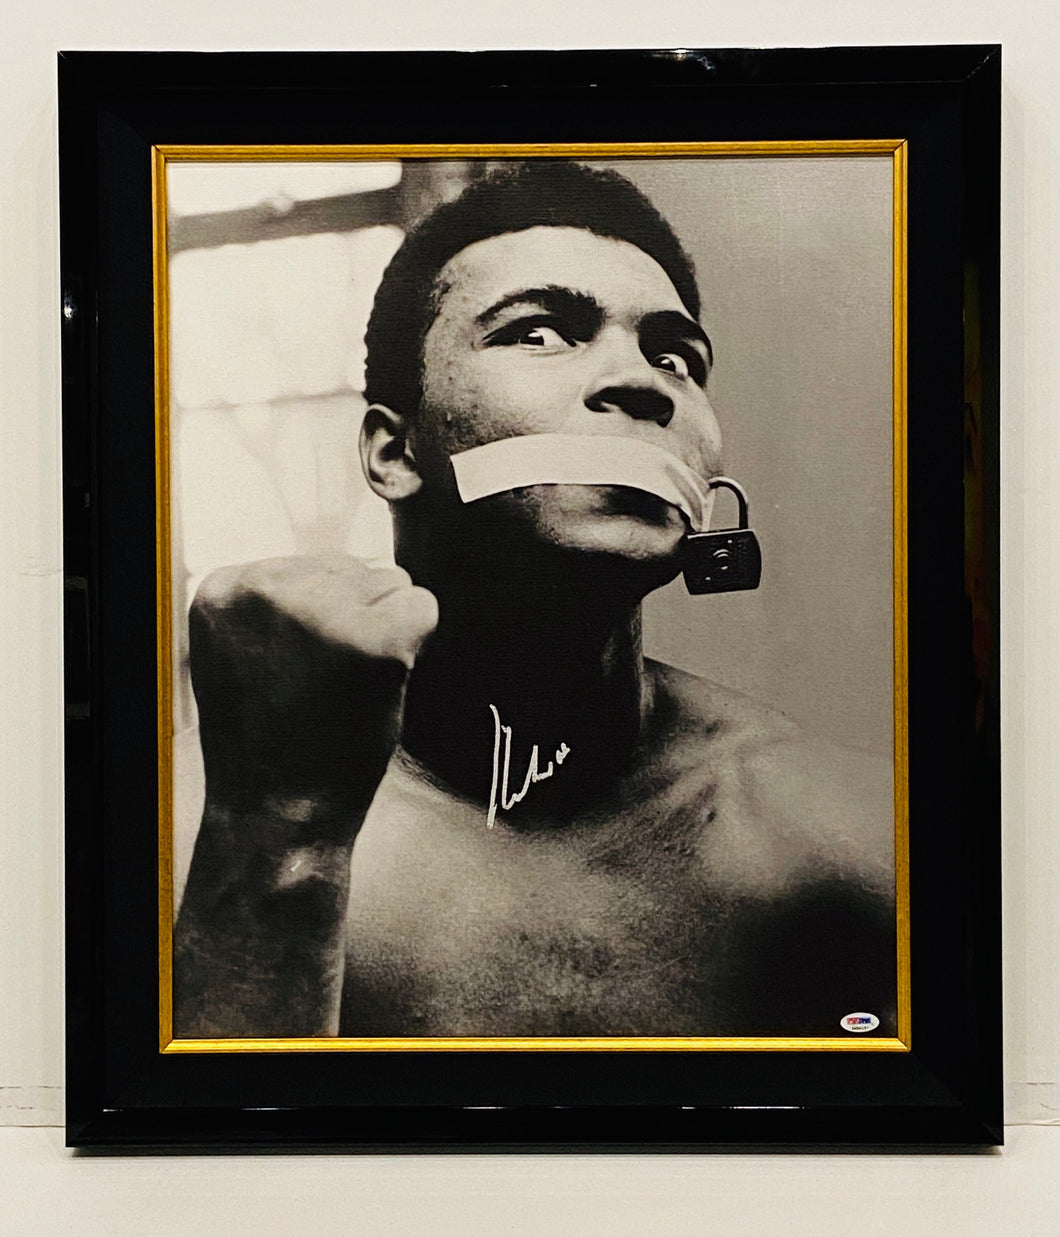 ALI - ' LOUDMOUTH ' PHOTO ON CANVAS HAND SIGNED BY MUHAMMAD ALI